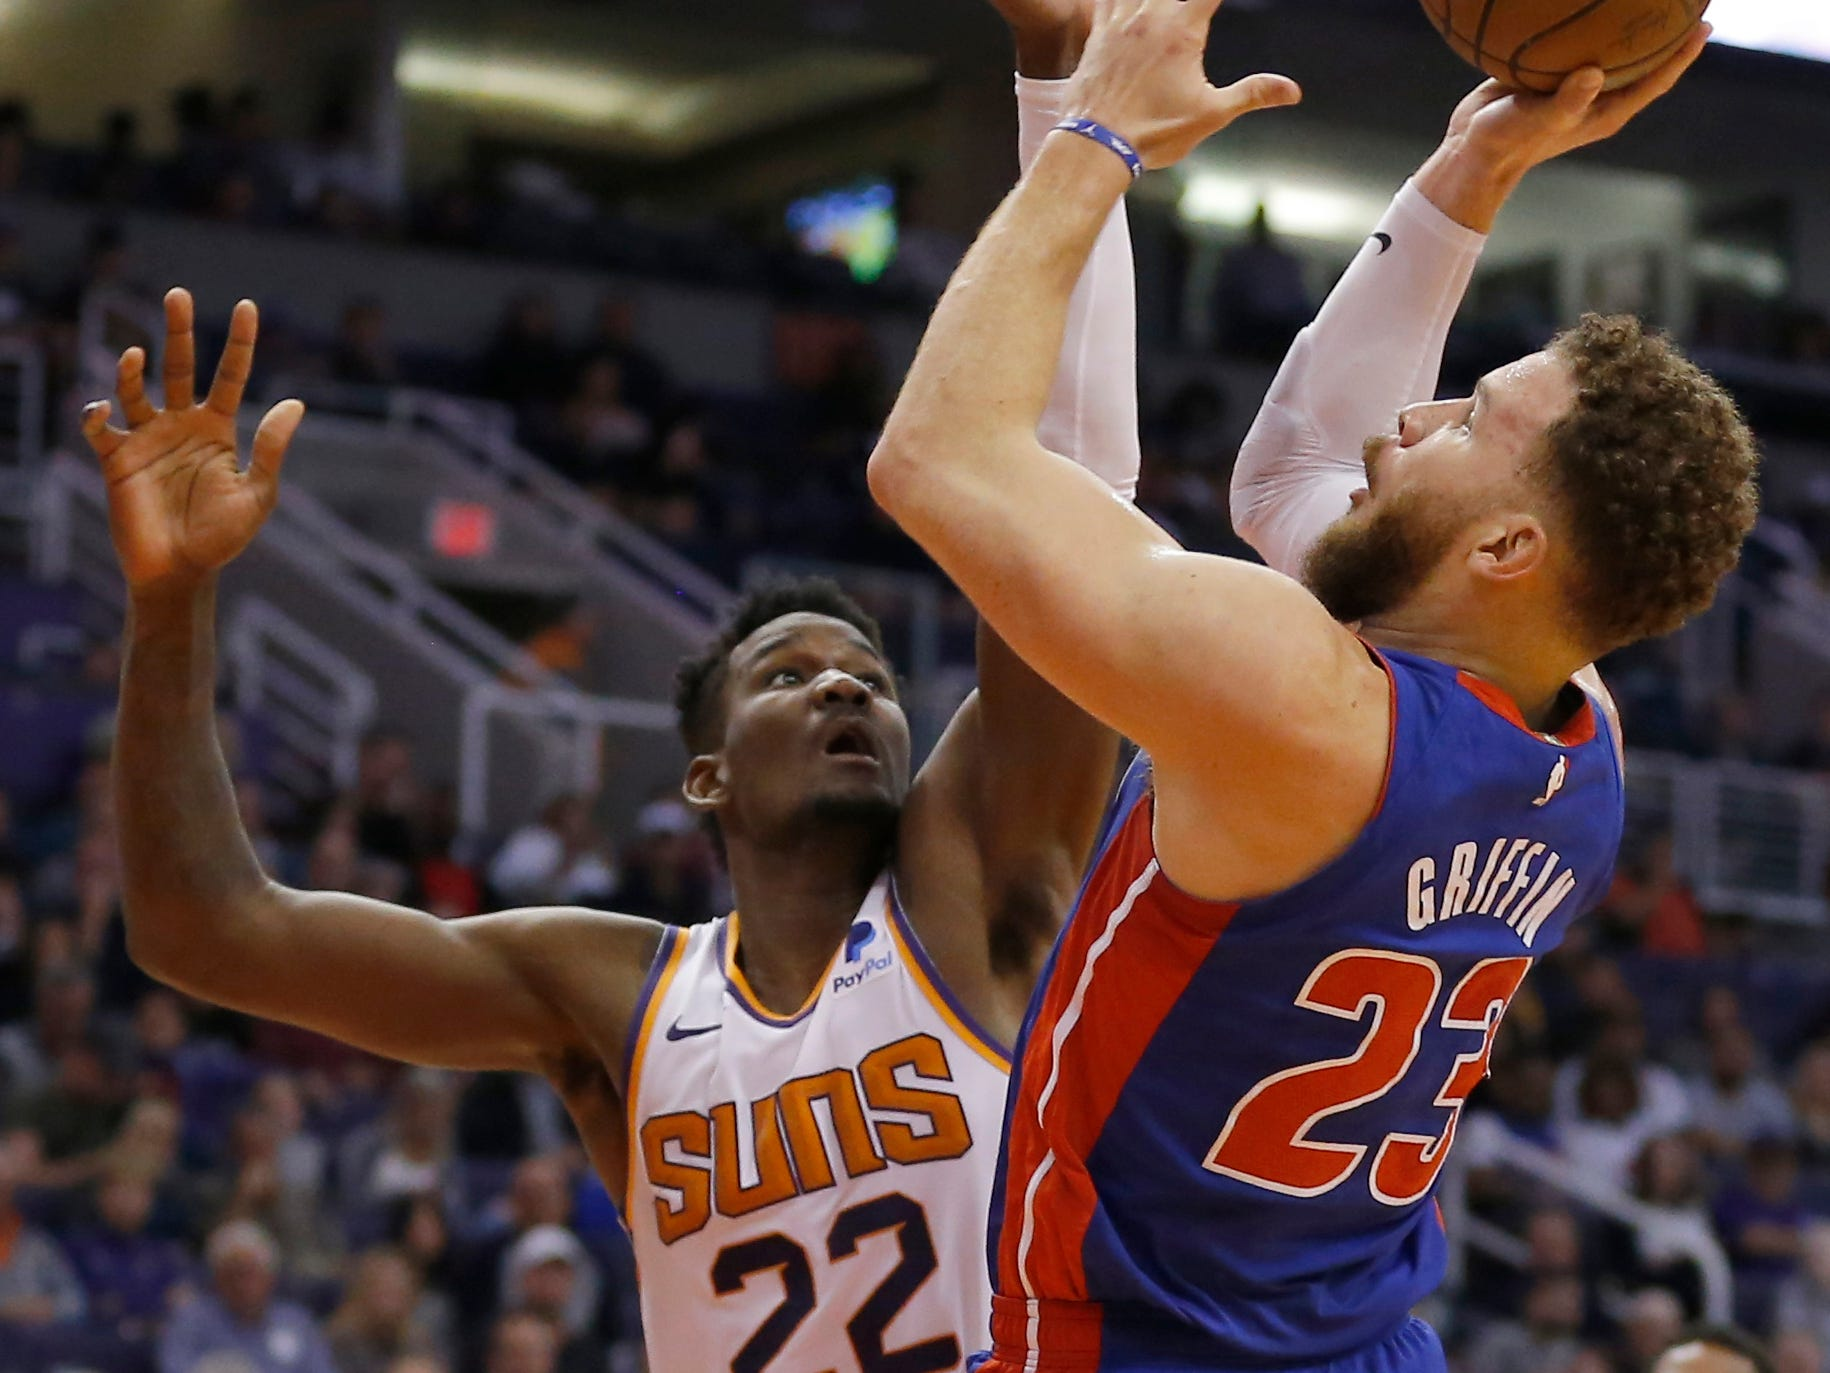 Mar 21, 2019; Phoenix, AZ, USA; Detroit Pistons forward Blake Griffin (23) gets fouled by Phoenix Suns center Deandre Ayton (22) in the second half during an NBA basketball game at Talking Stick Resort Arena.